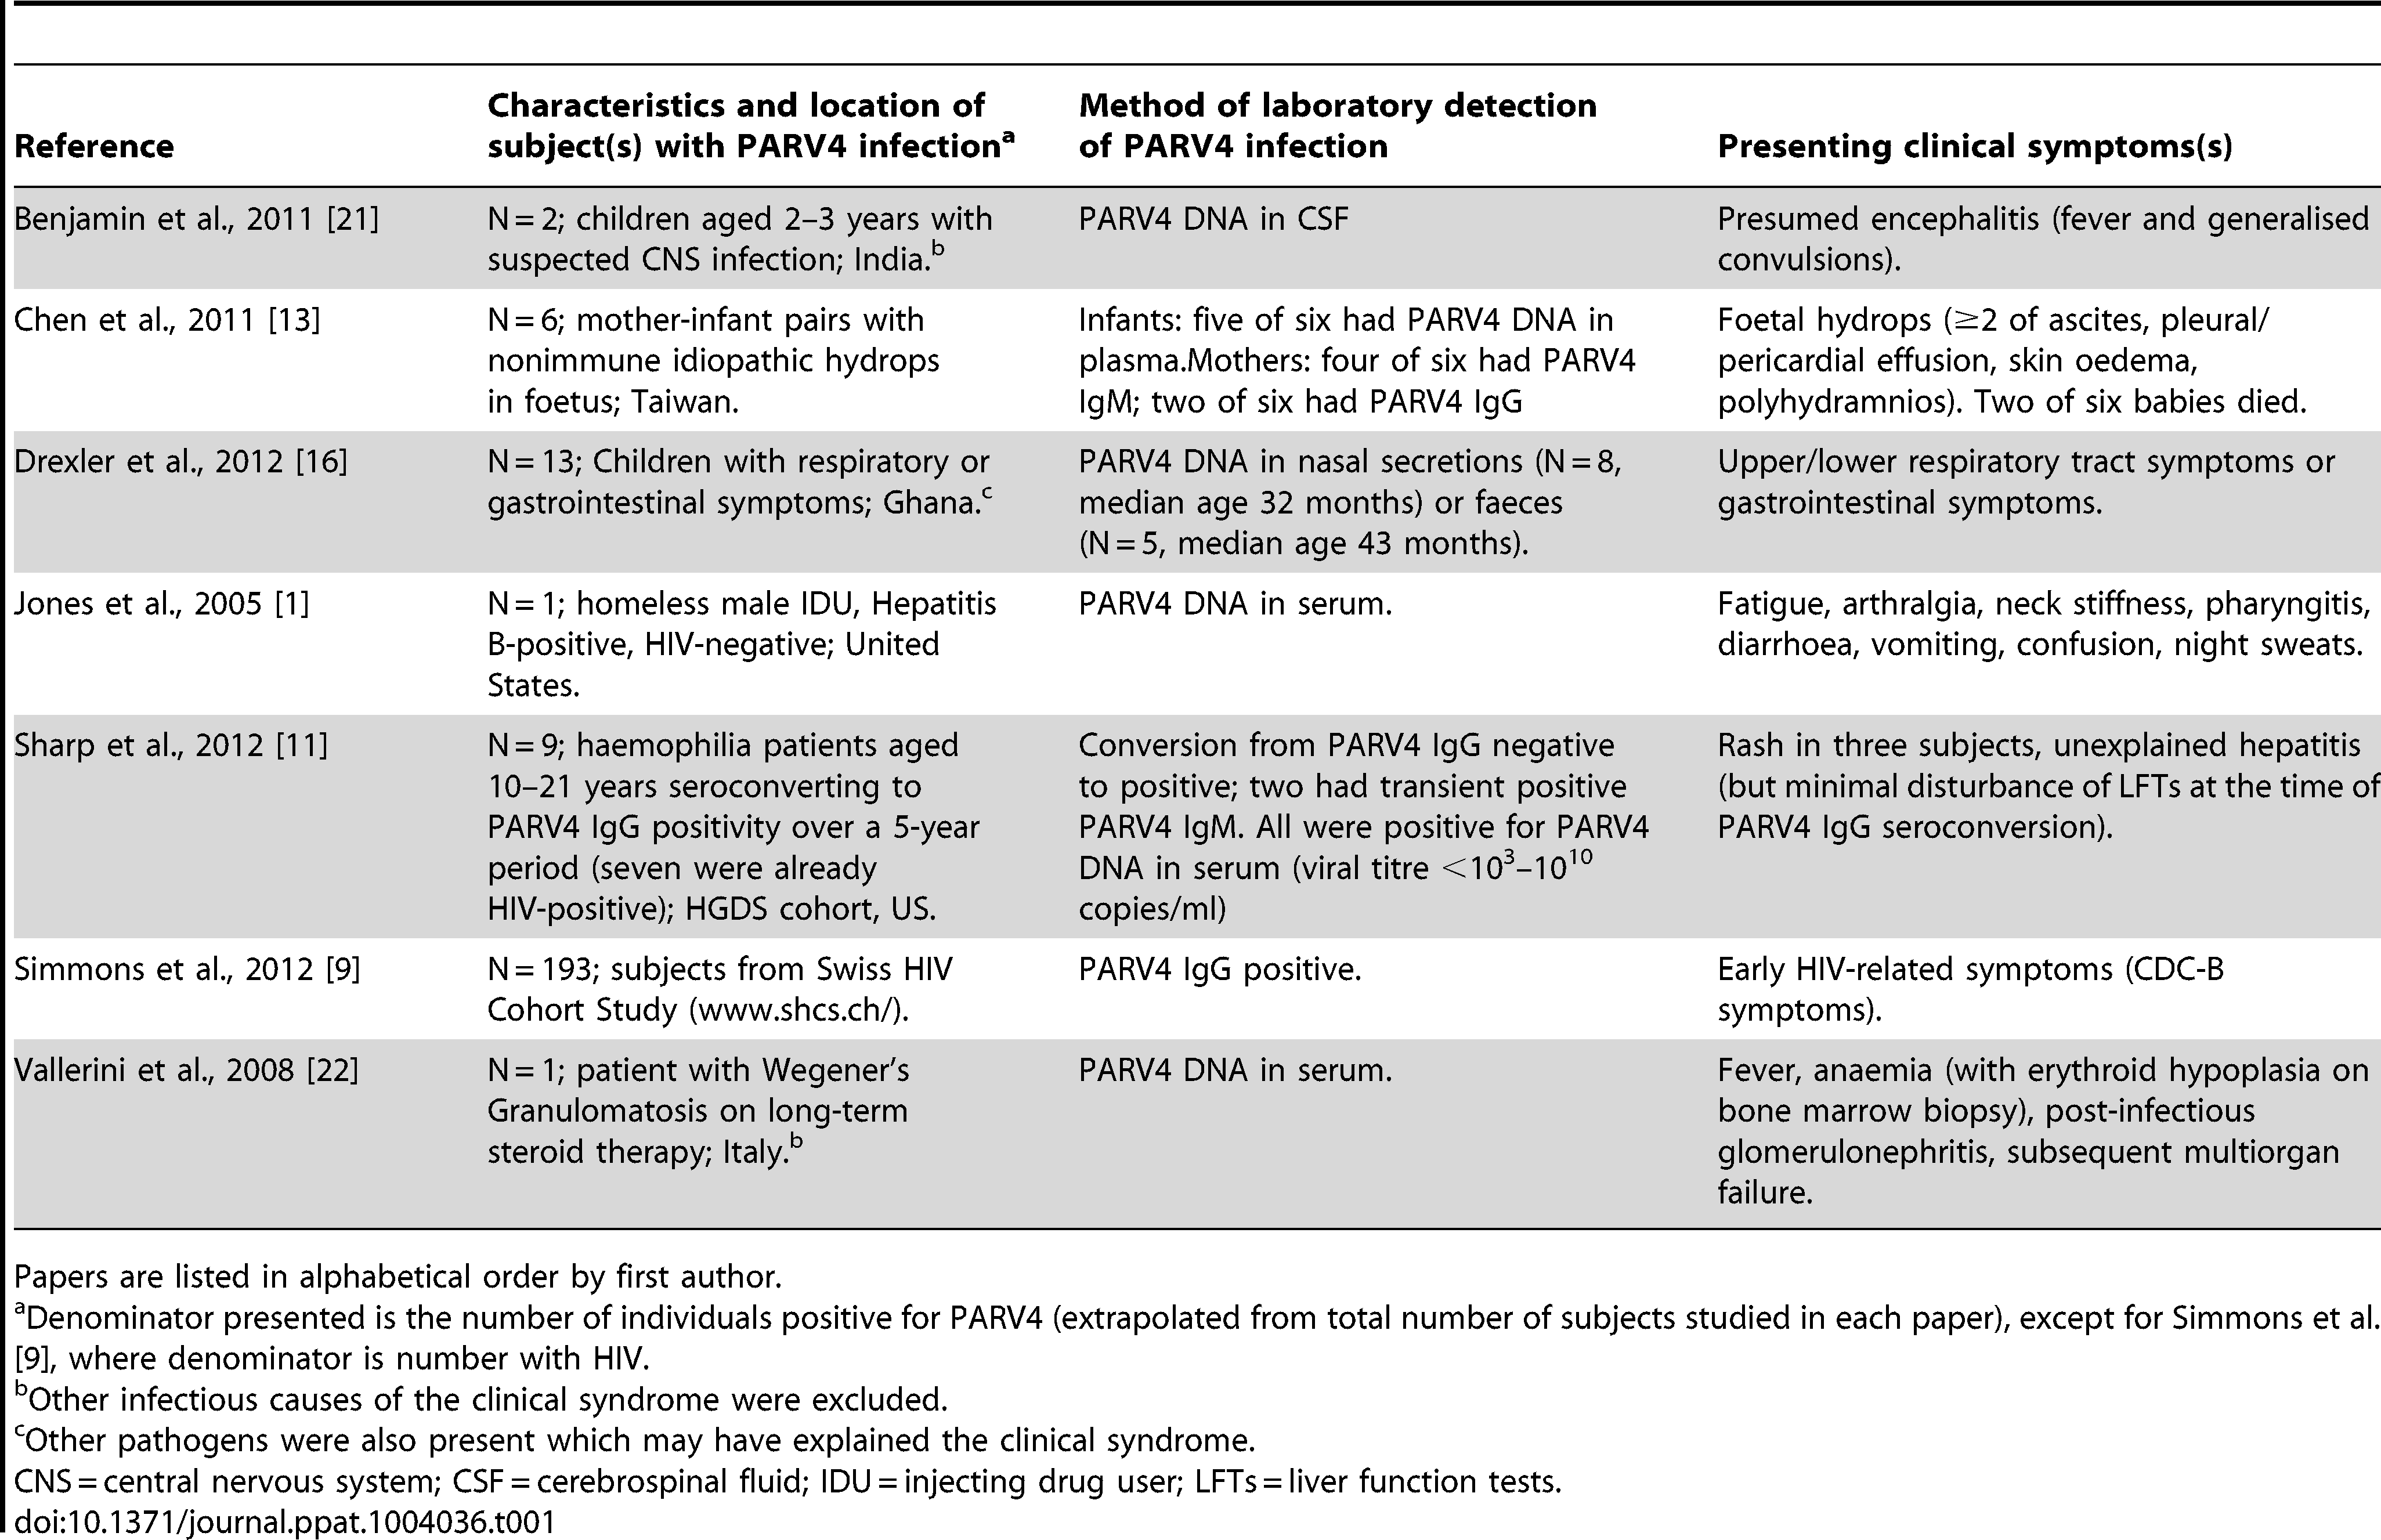 Clinical symptoms reported in subjects with PARV4 infection.